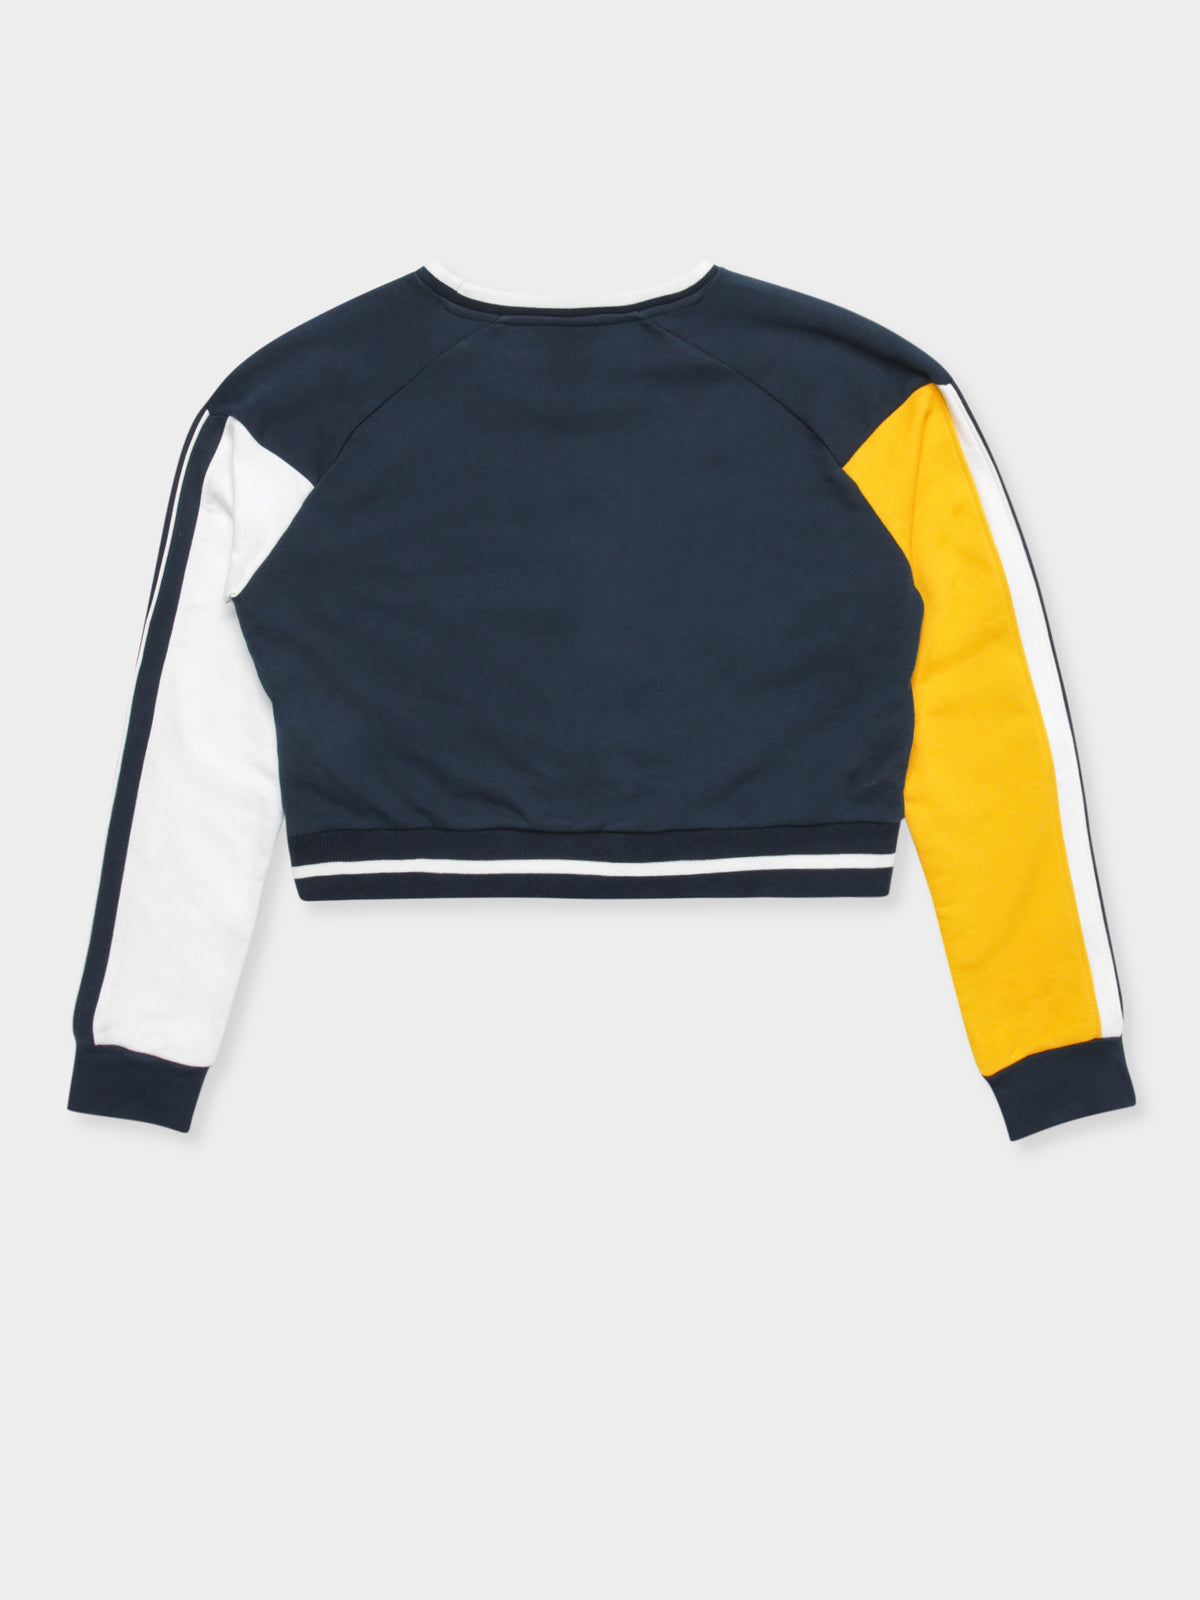 Mania Cropped Sweatshirt in Navy